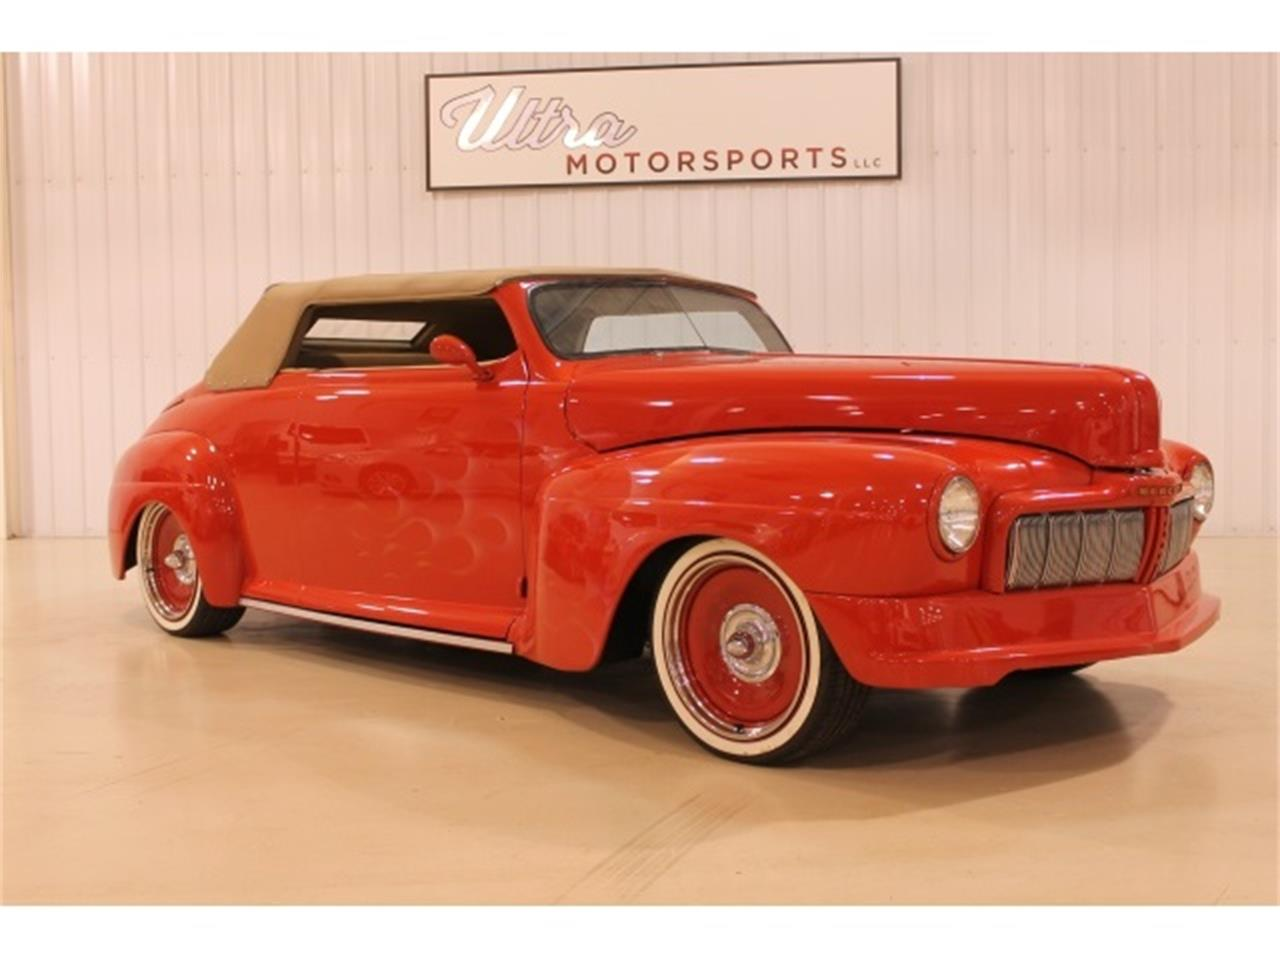 Large Picture of 1946 Mercury Coupe located in Fort Wayne Indiana - $28,000.00 Offered by Ultra Motorsports - MX98